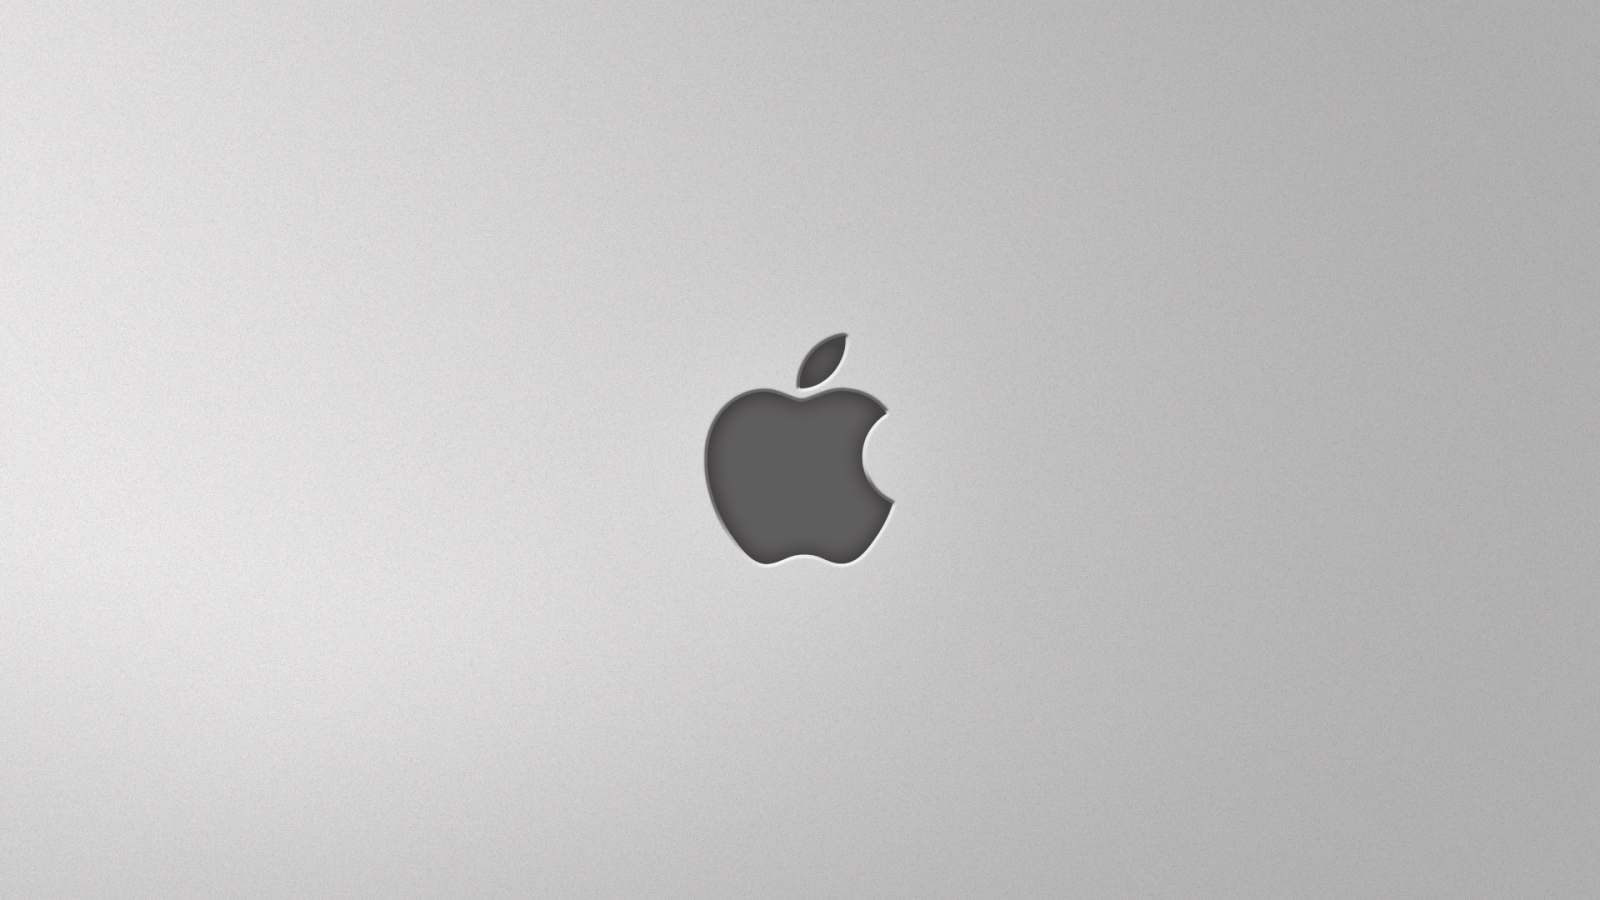 Logo de Apple - 1600x900